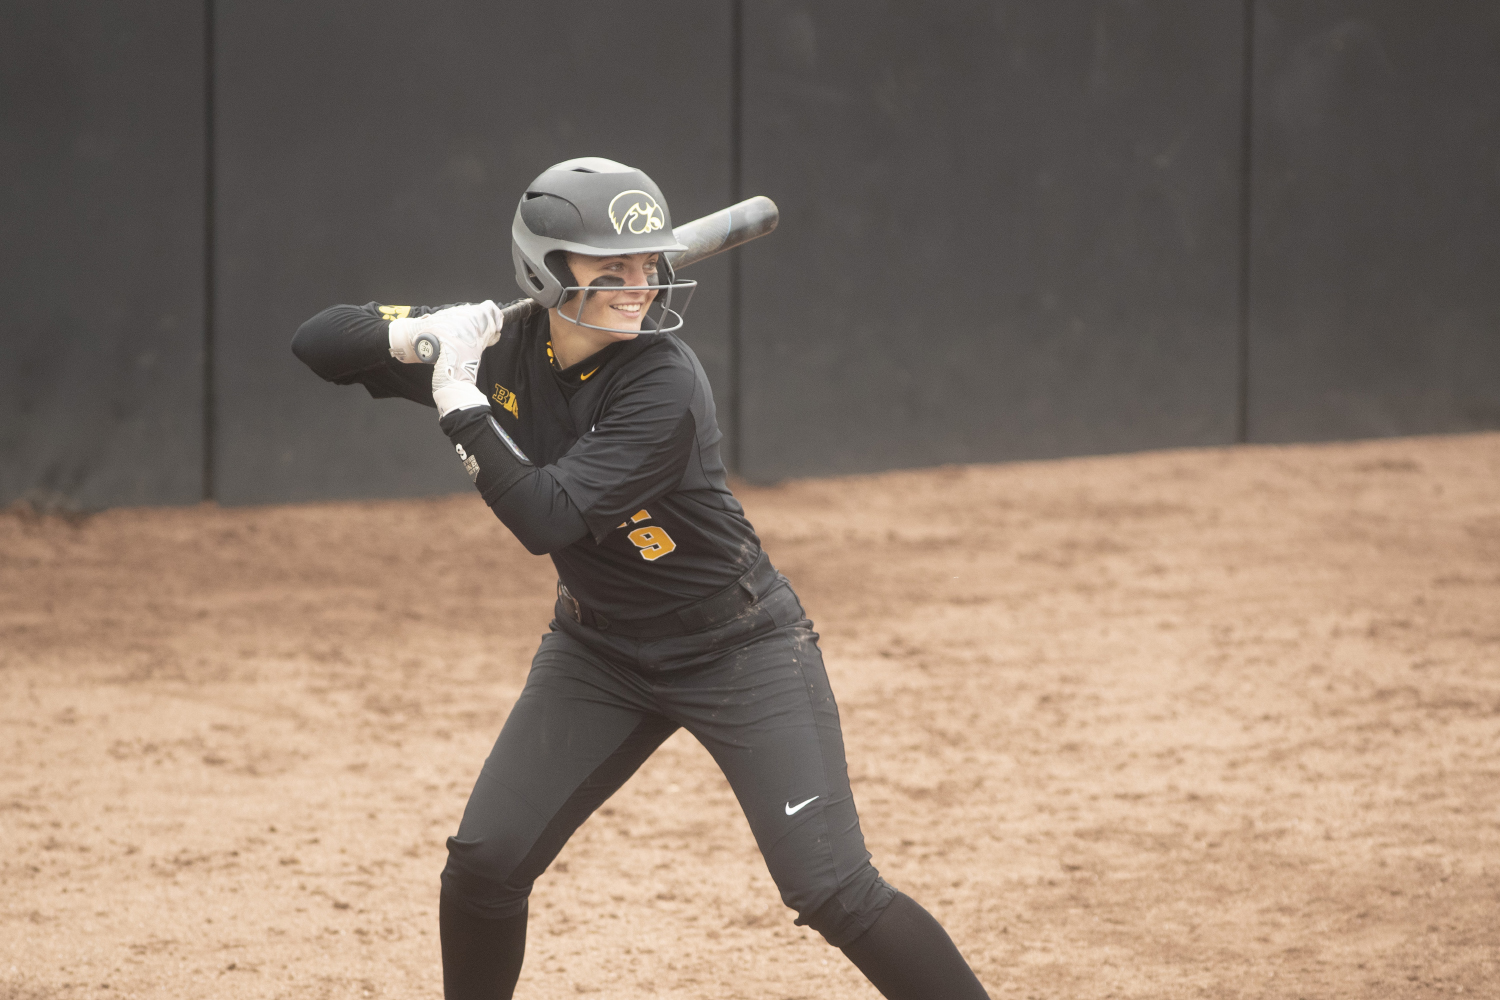 Iowa pitcher Lauren Shaw winds up for a swing at the Iowa softball game against Indian Hills at Pearl Field on Sunday, October 6th, 2019. The Hawkeyes defeated the Warriors 21-2.